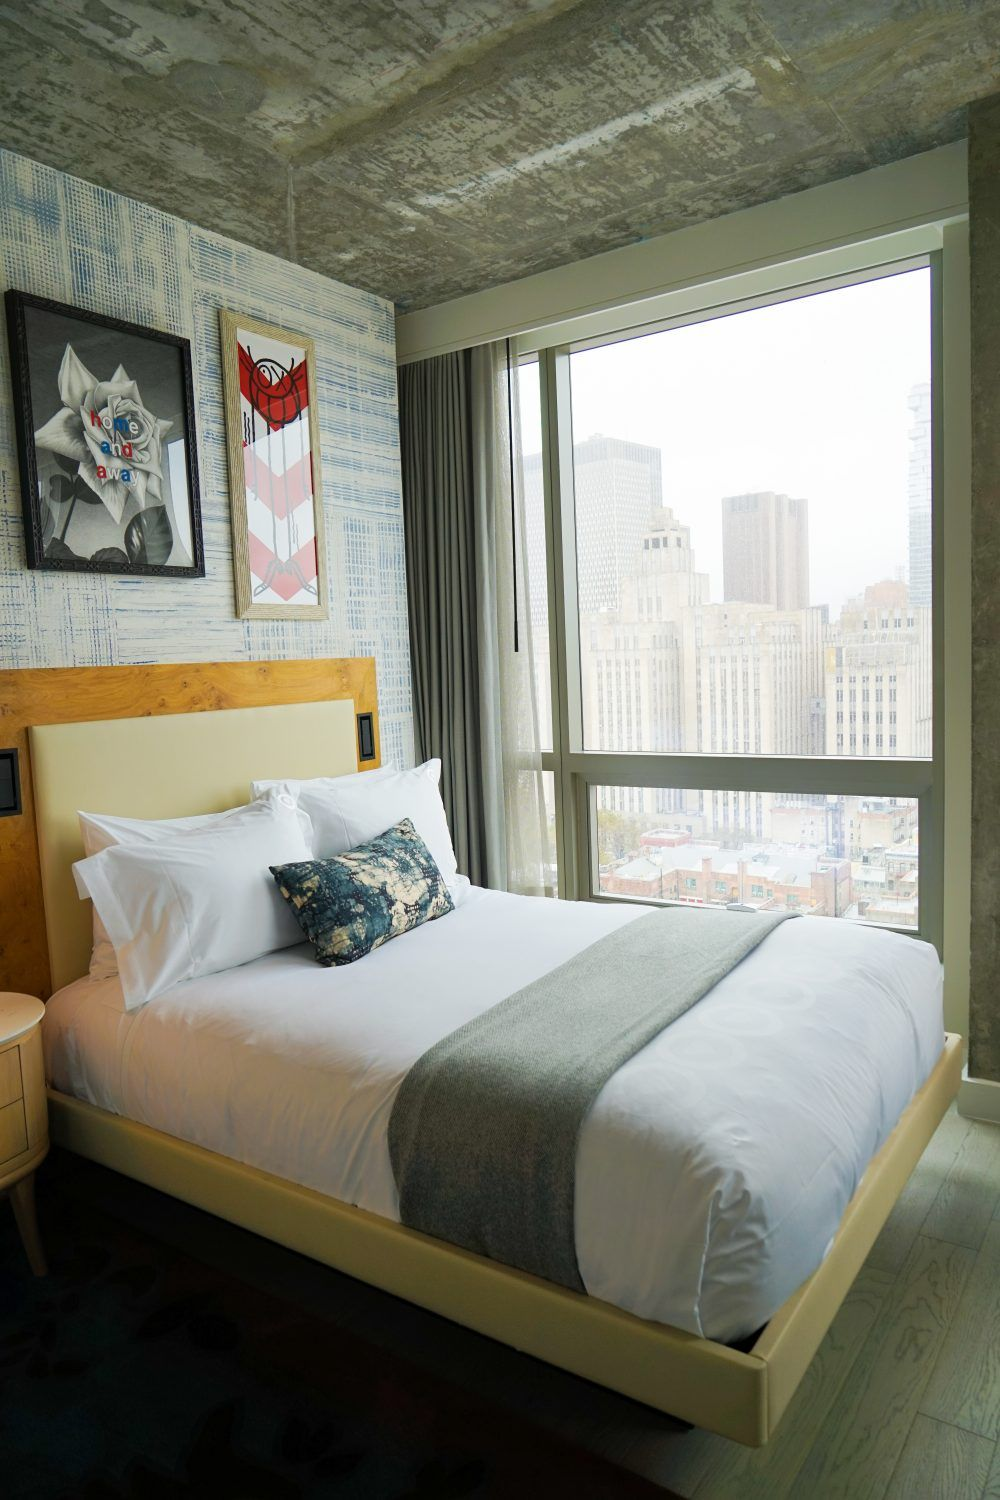 Best Hotel Rooms: 23 Top Luxury Hotels In Manhattan NYC For Your Perfect